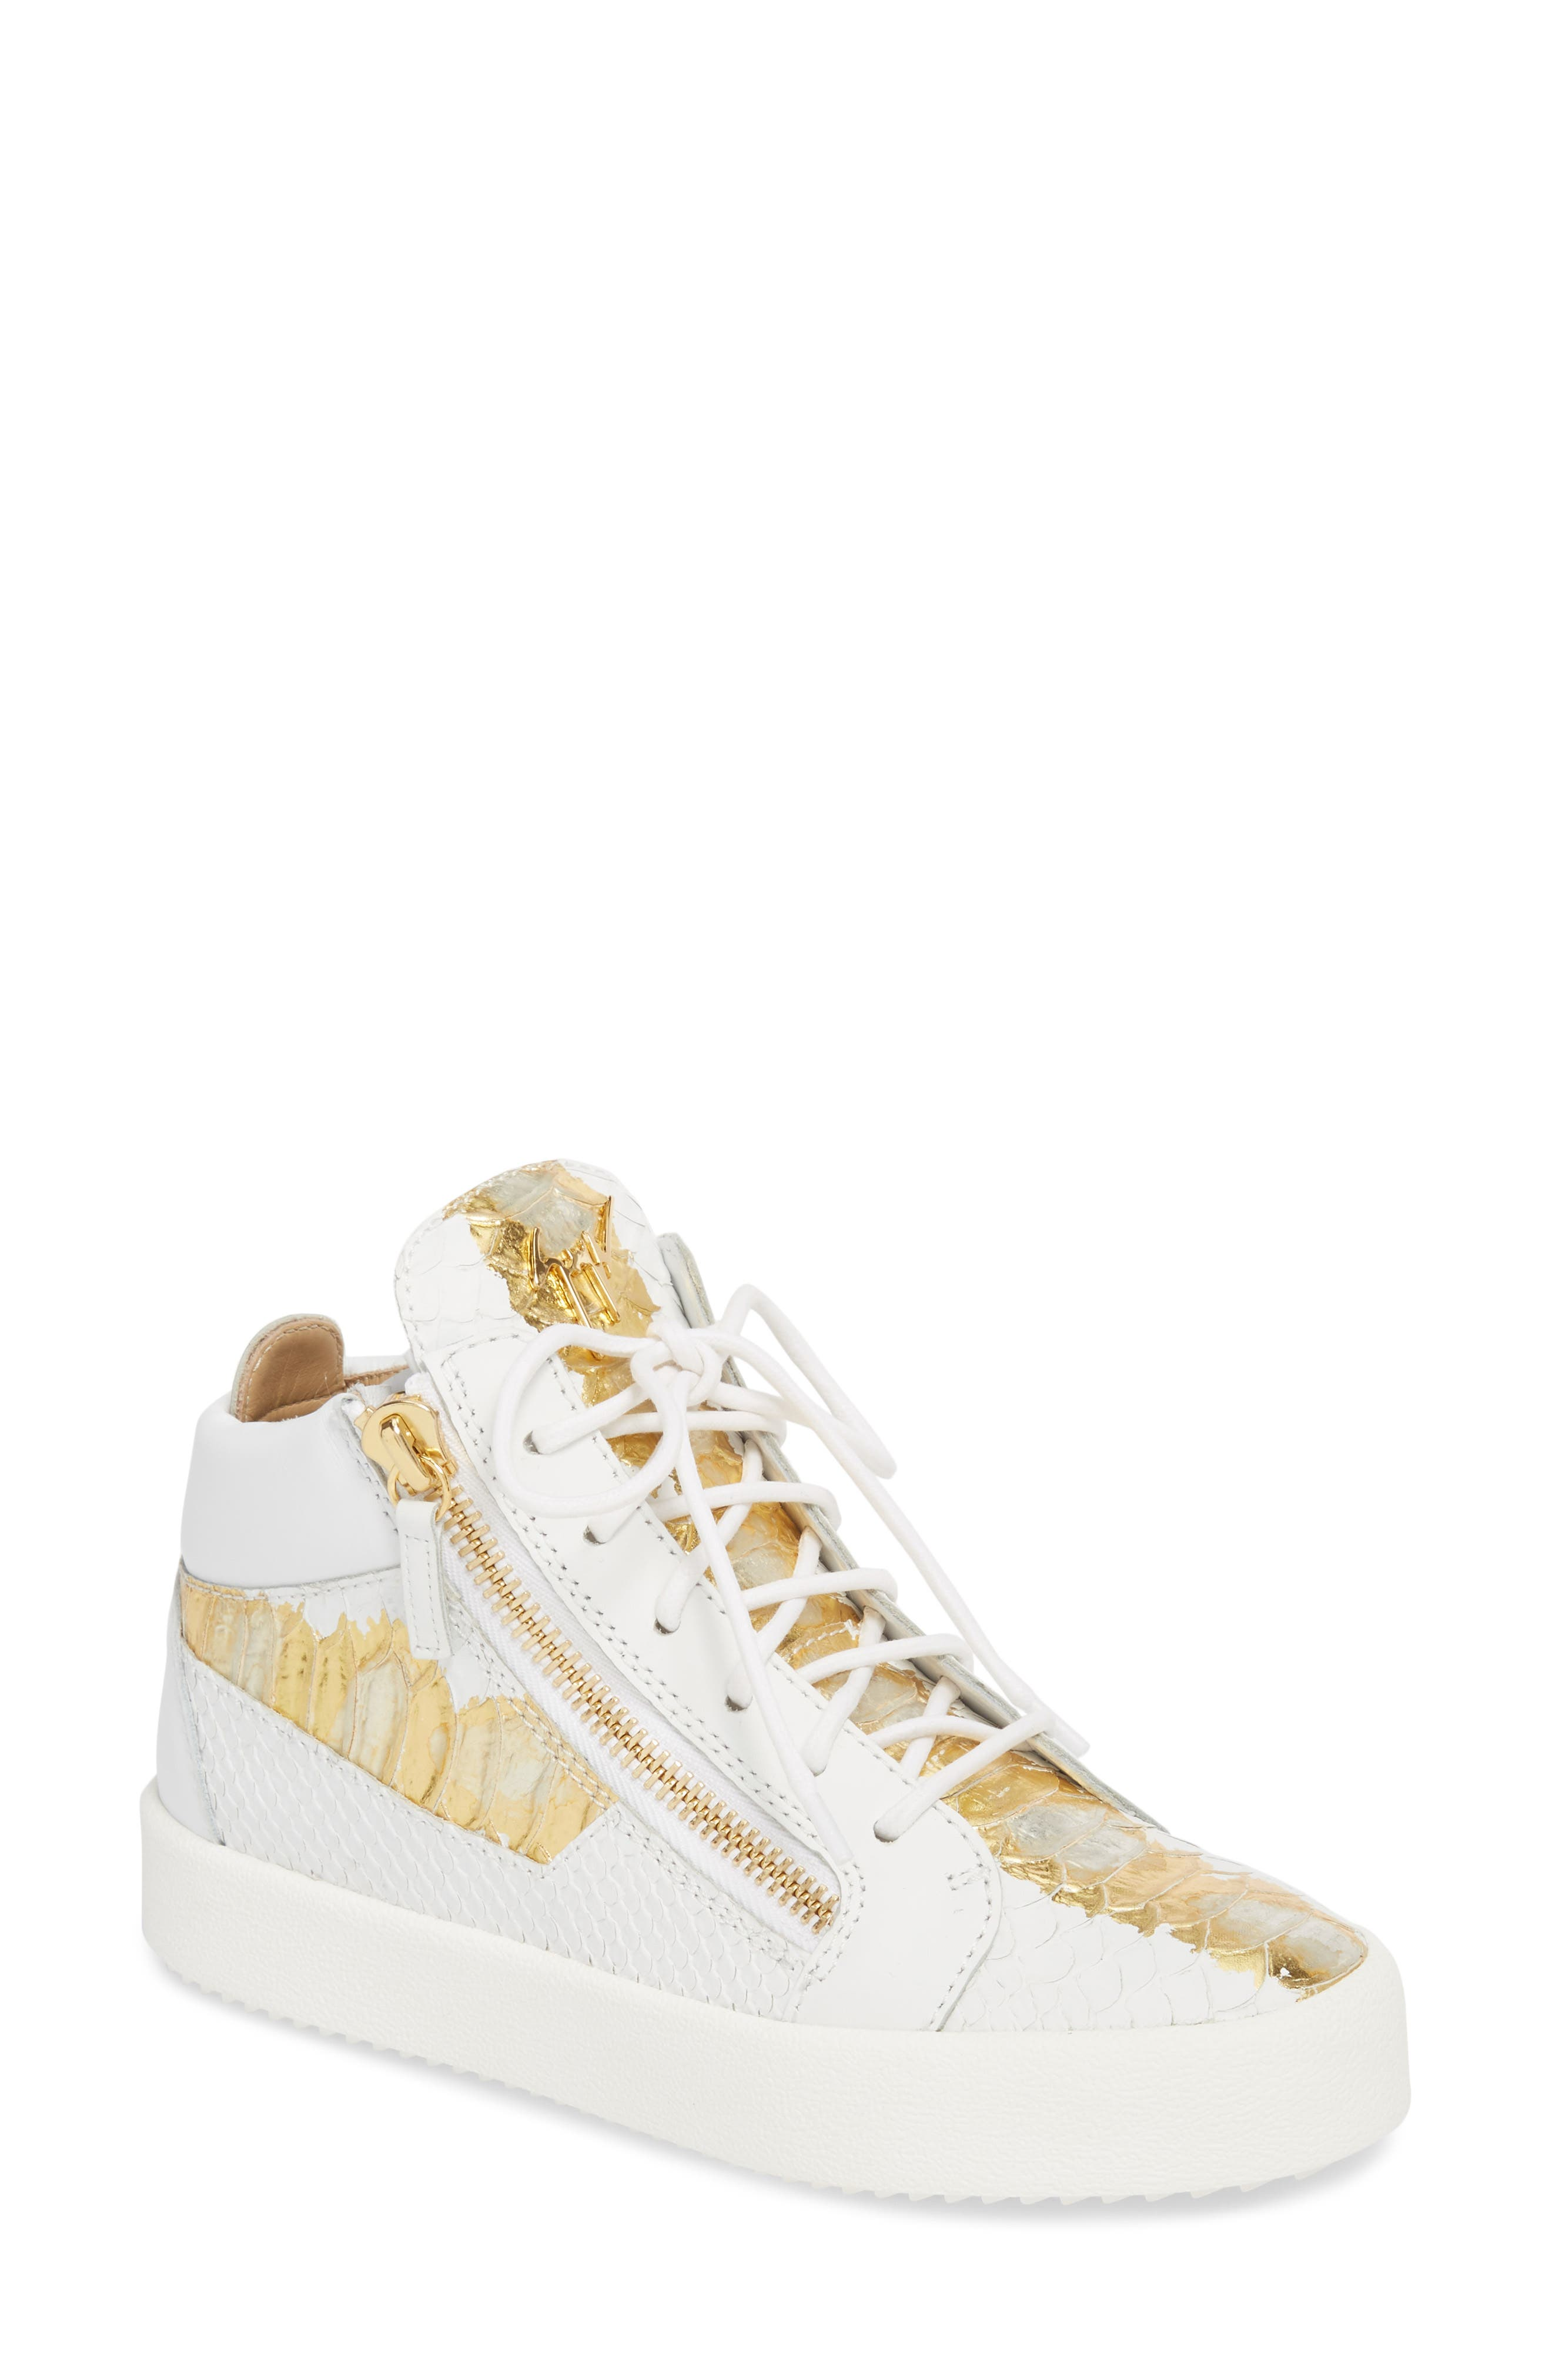 May London Mid Top Sneaker,                         Main,                         color, White/ Gold